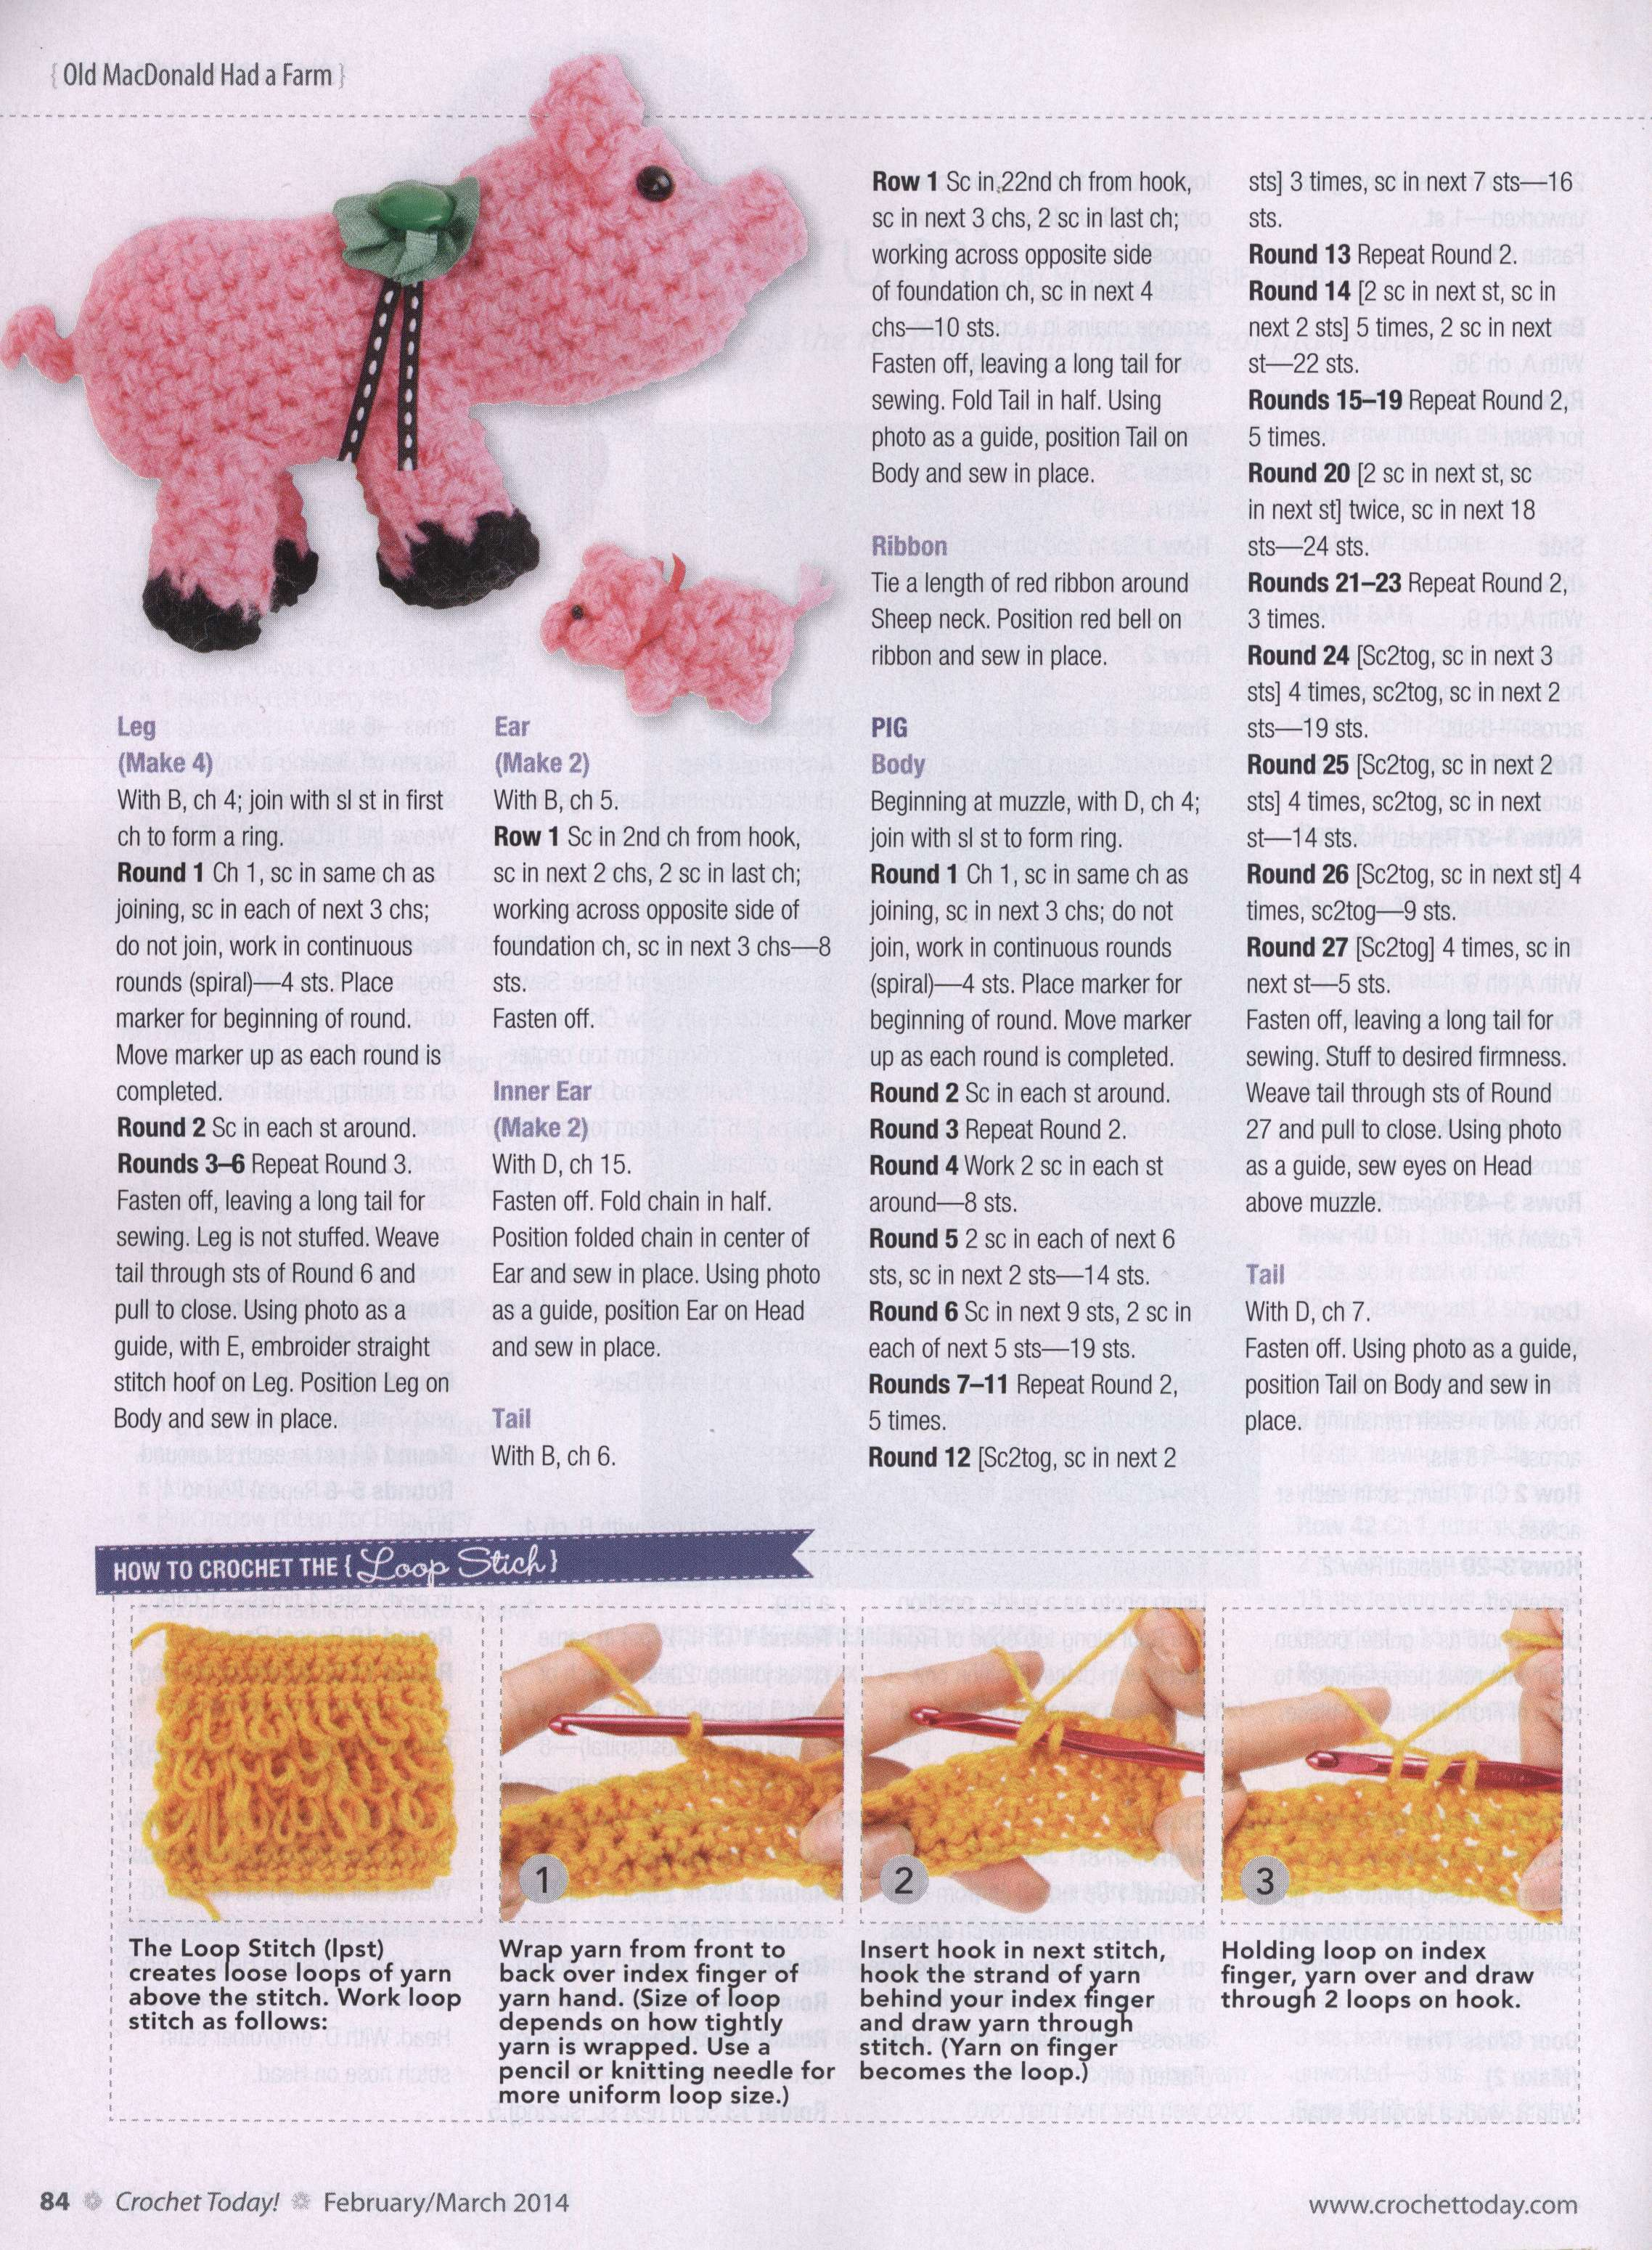 30+ Free Amigurumi Patterns to Crochet Today! New 2019 - Page 16 ... | 3099x2276